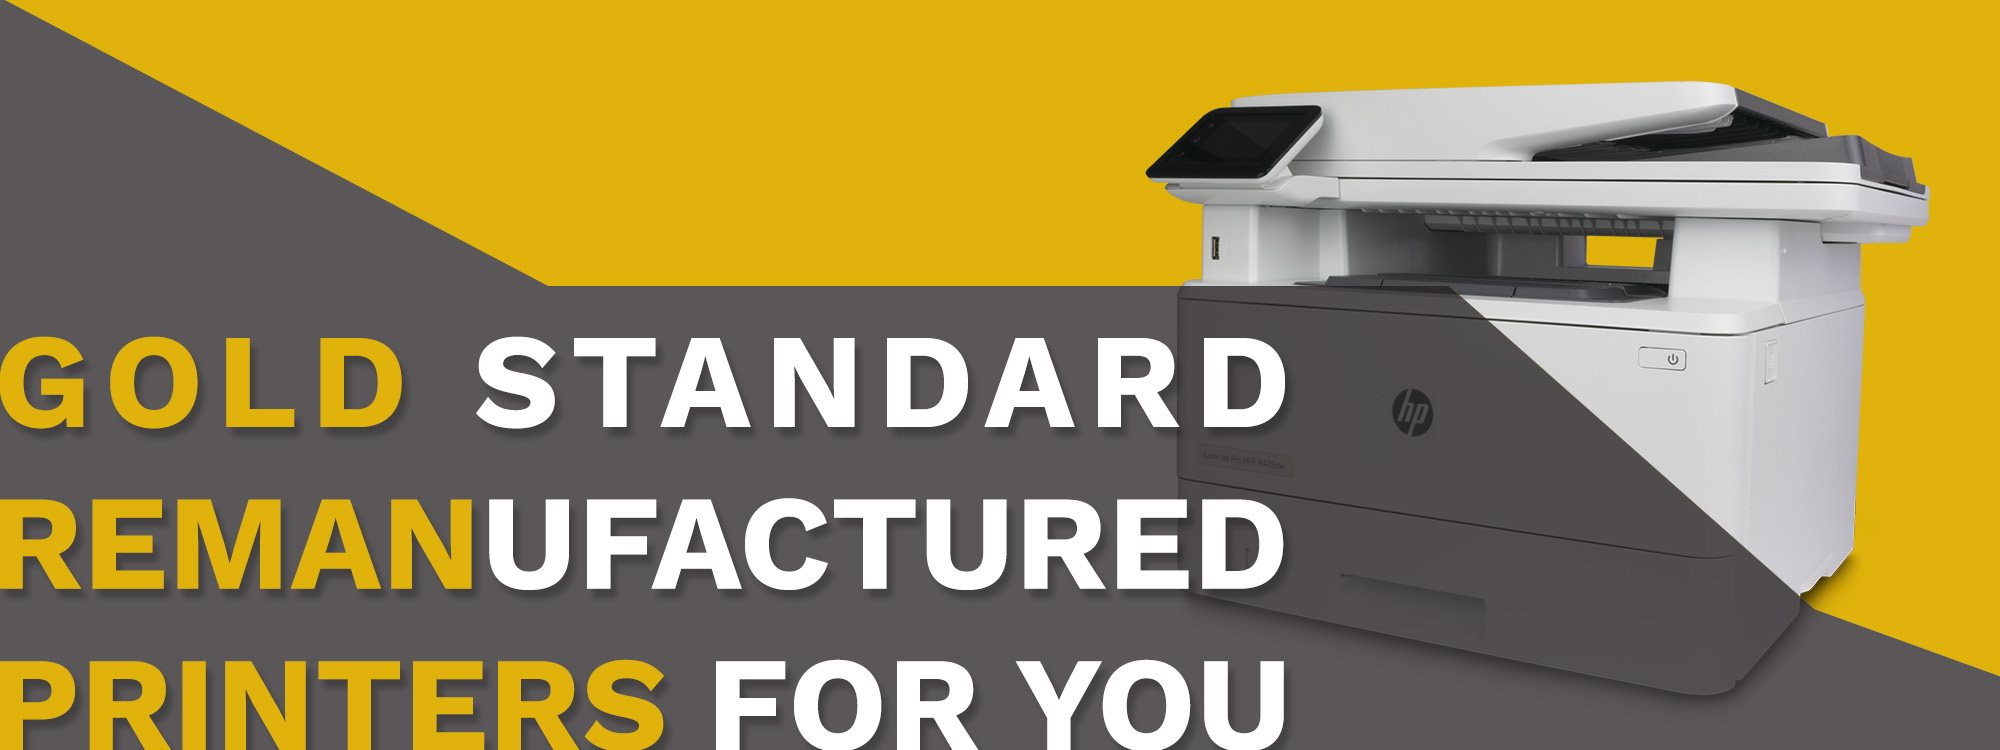 Gold Standard Reman Printers For You